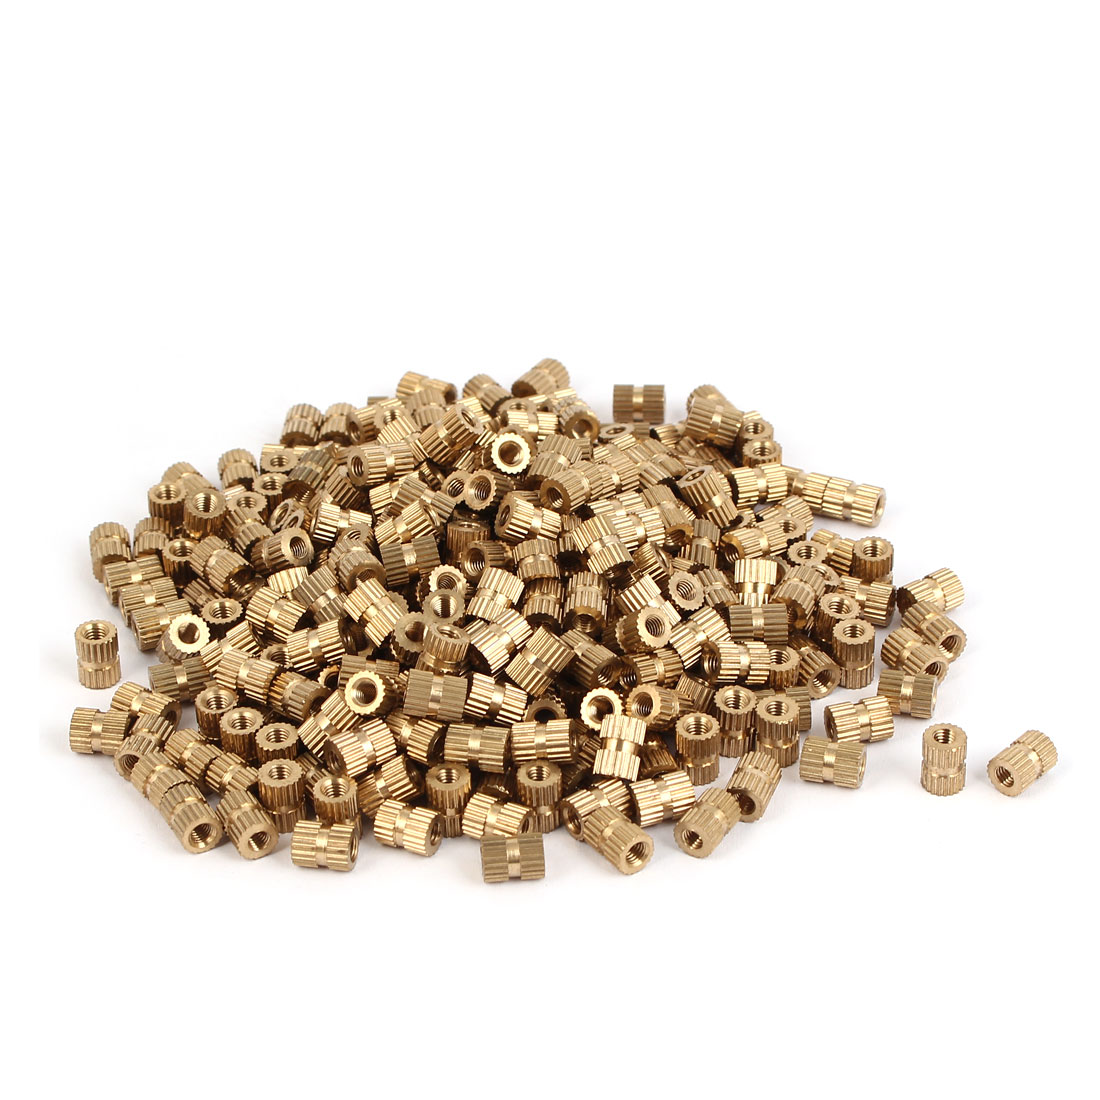 M3 x 7mm Brass Cylinder Injection Molding Knurled Threaded Insert Nuts 500PCS